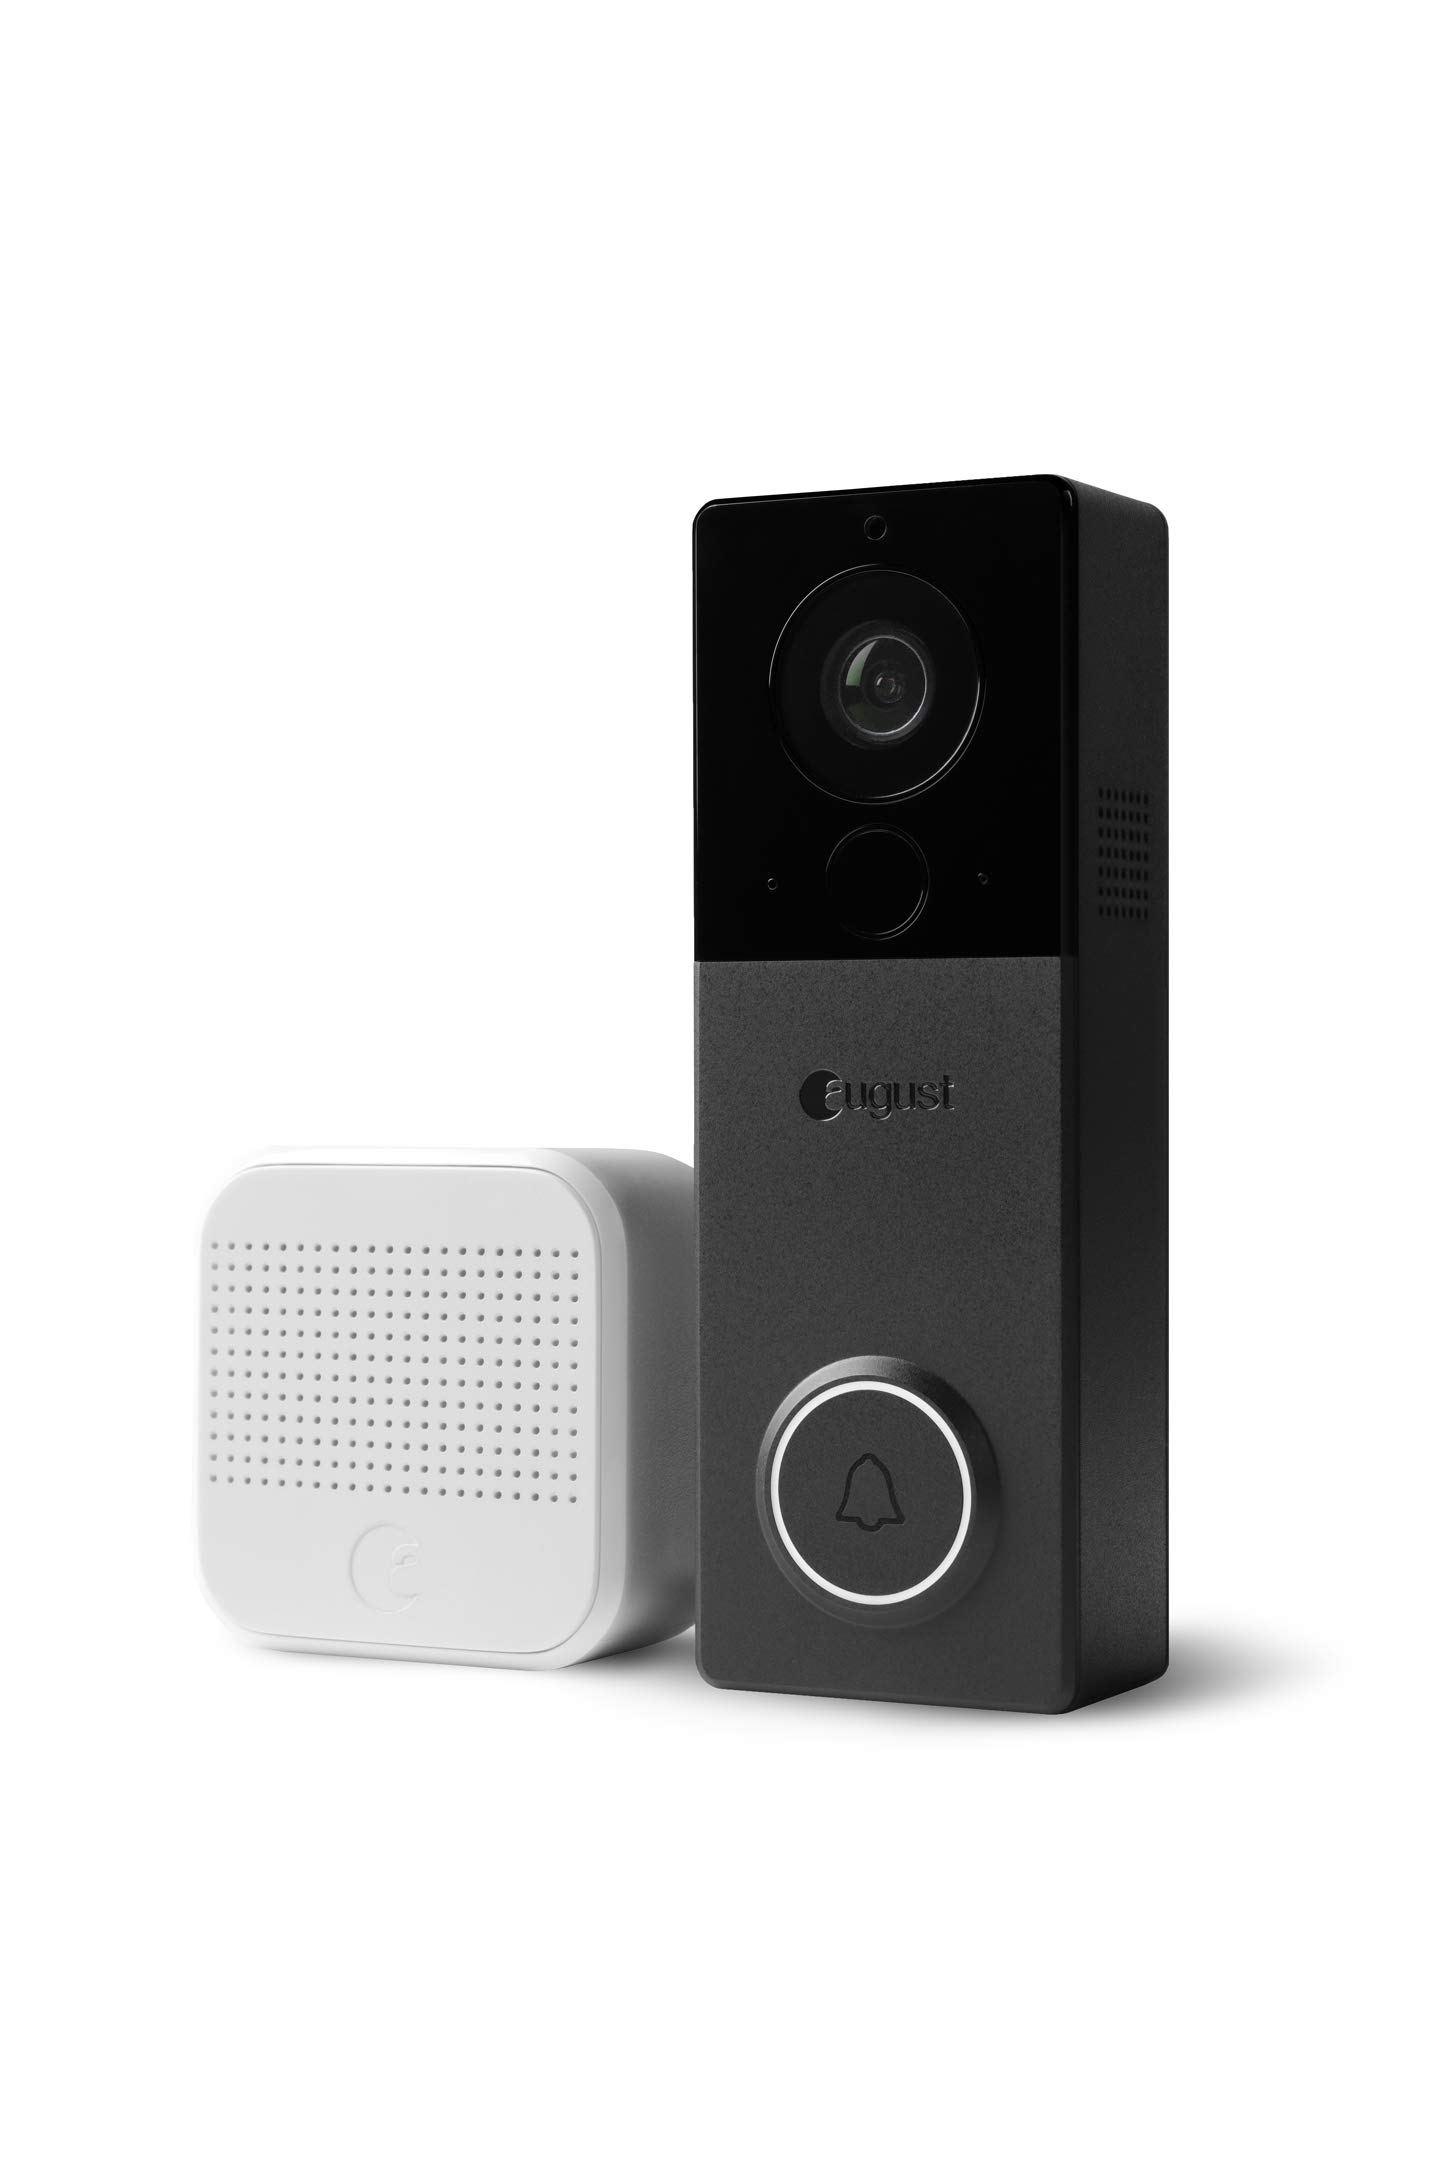 August AUG-AB03-C04-001, August View, Wire-Free Doorbell Camera, Black